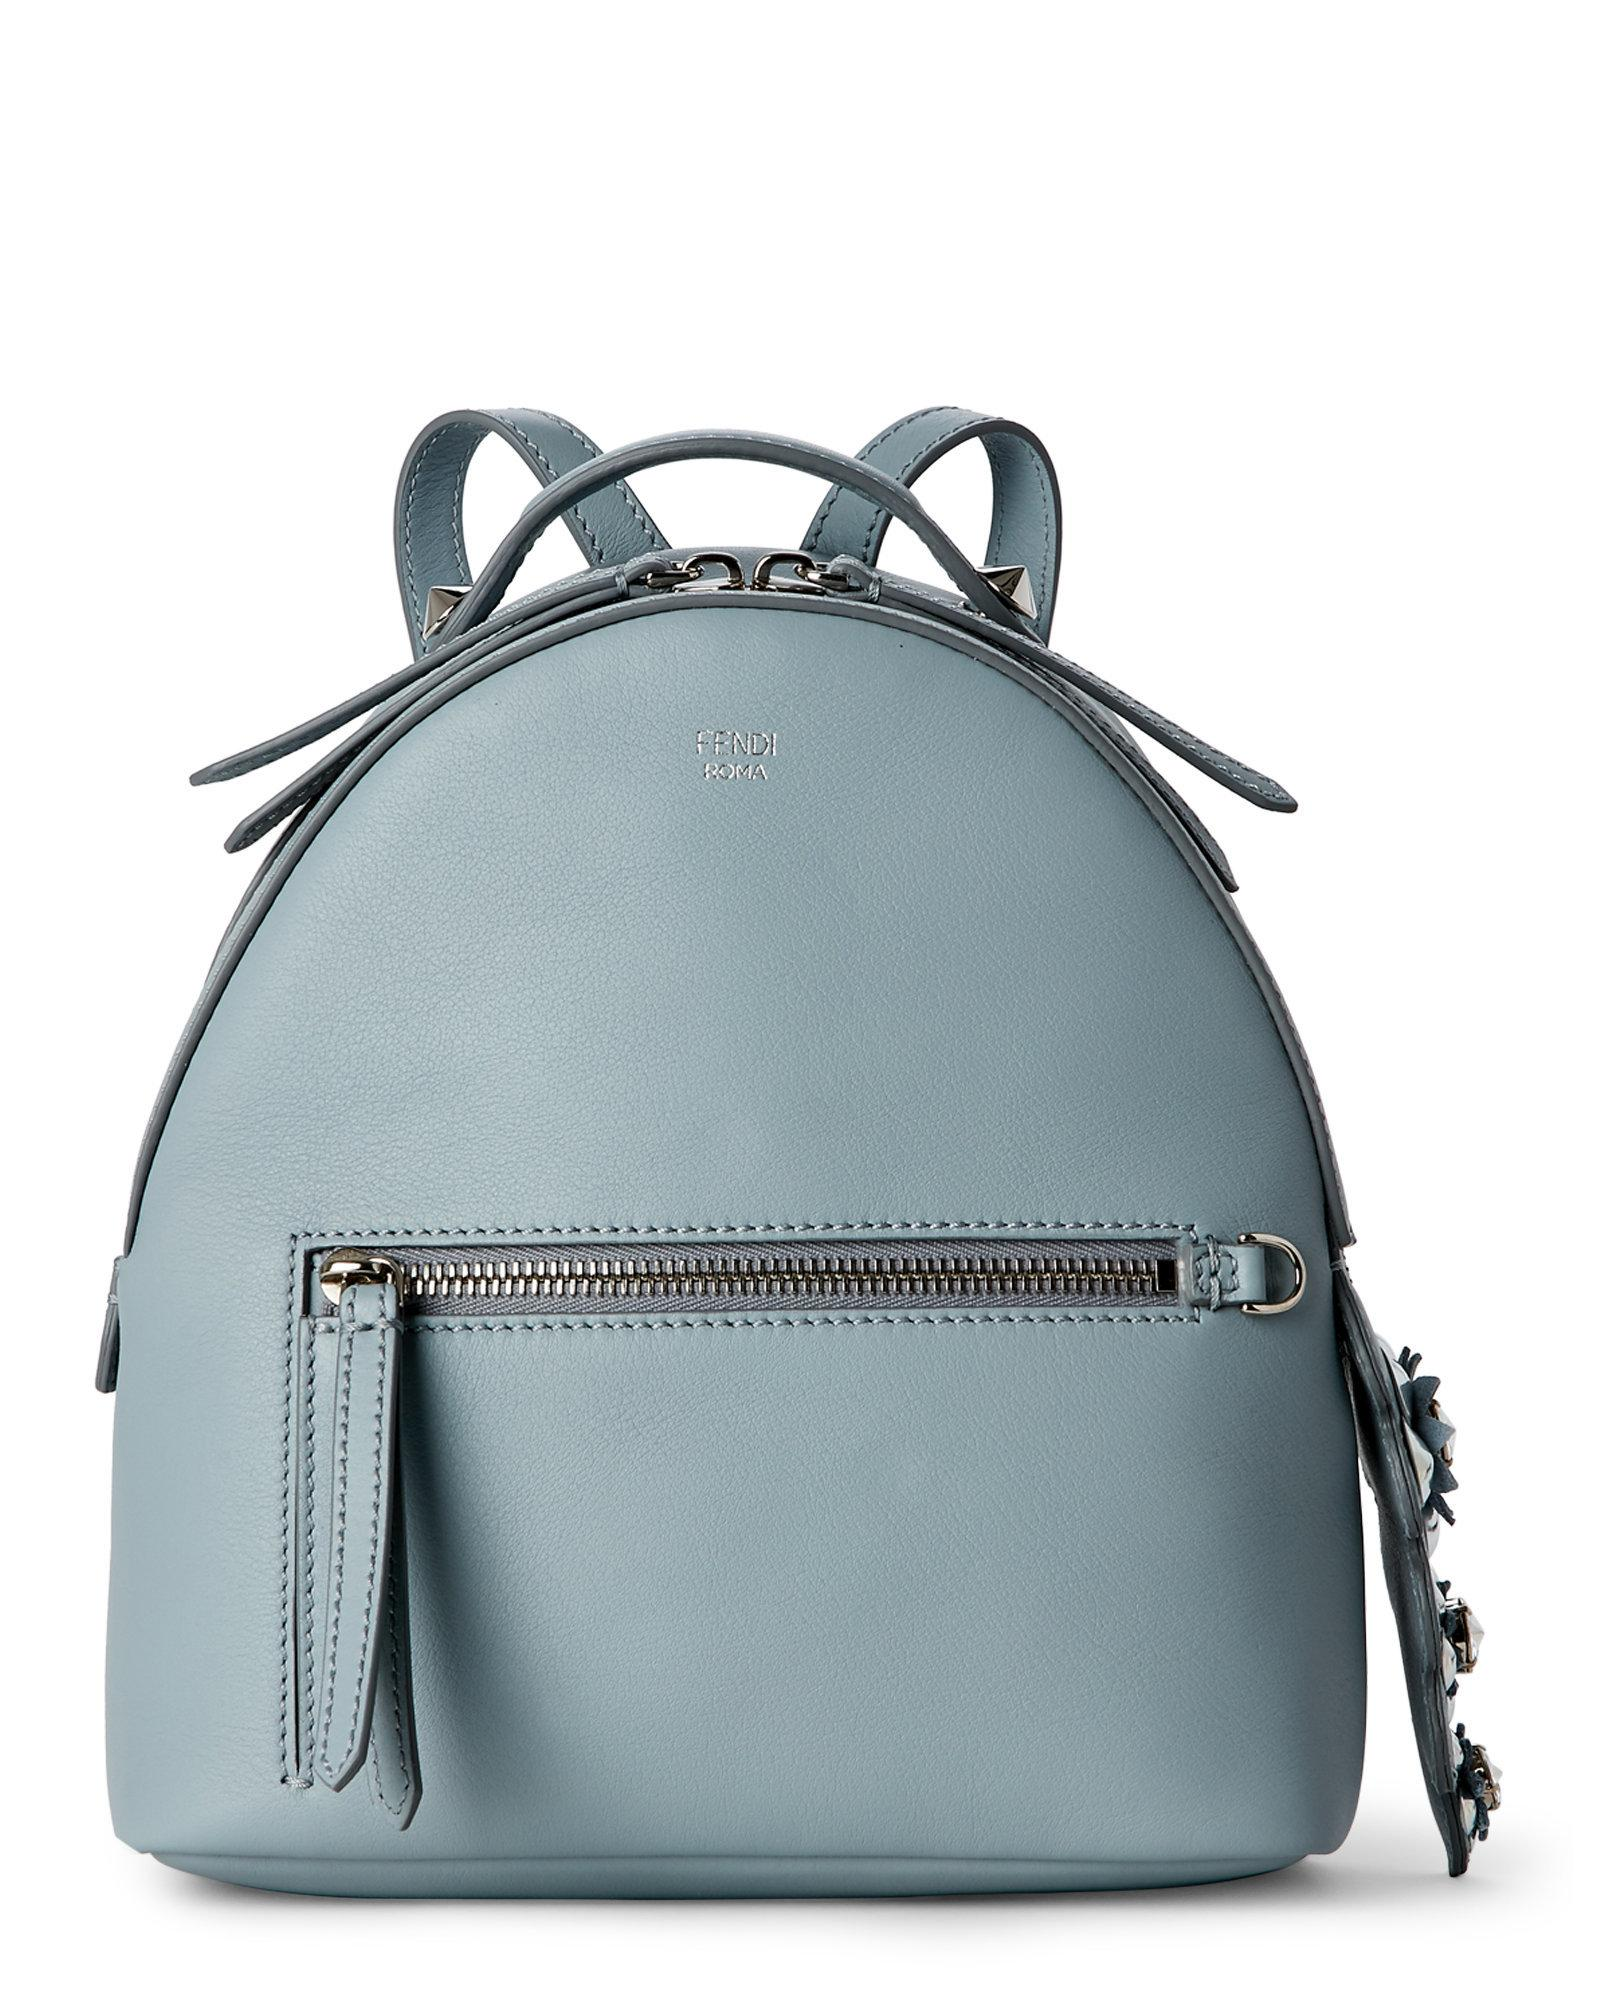 5d780dc3143e Lyst - Fendi Small Backpack in Gray